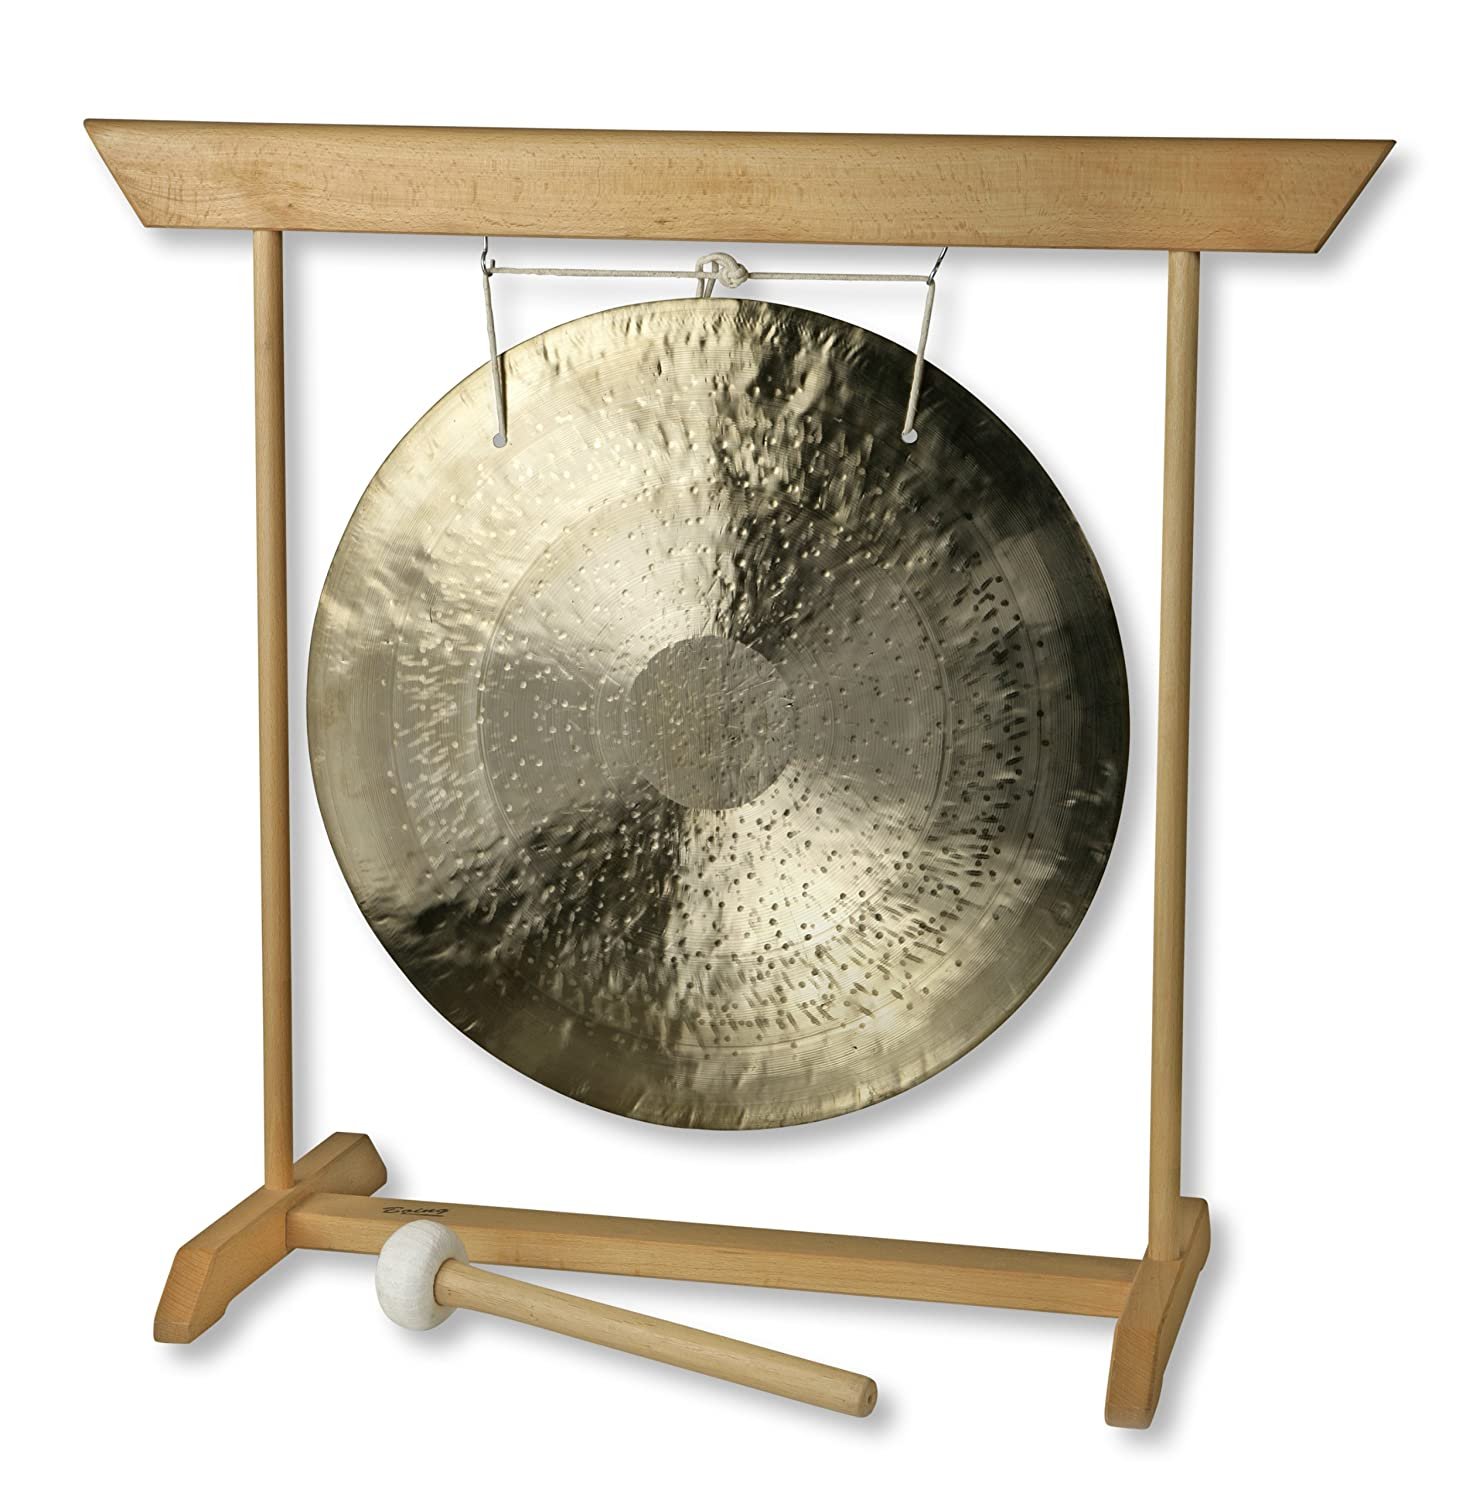 Gong /Ø 55 cm with wooden stand beech and bobbin